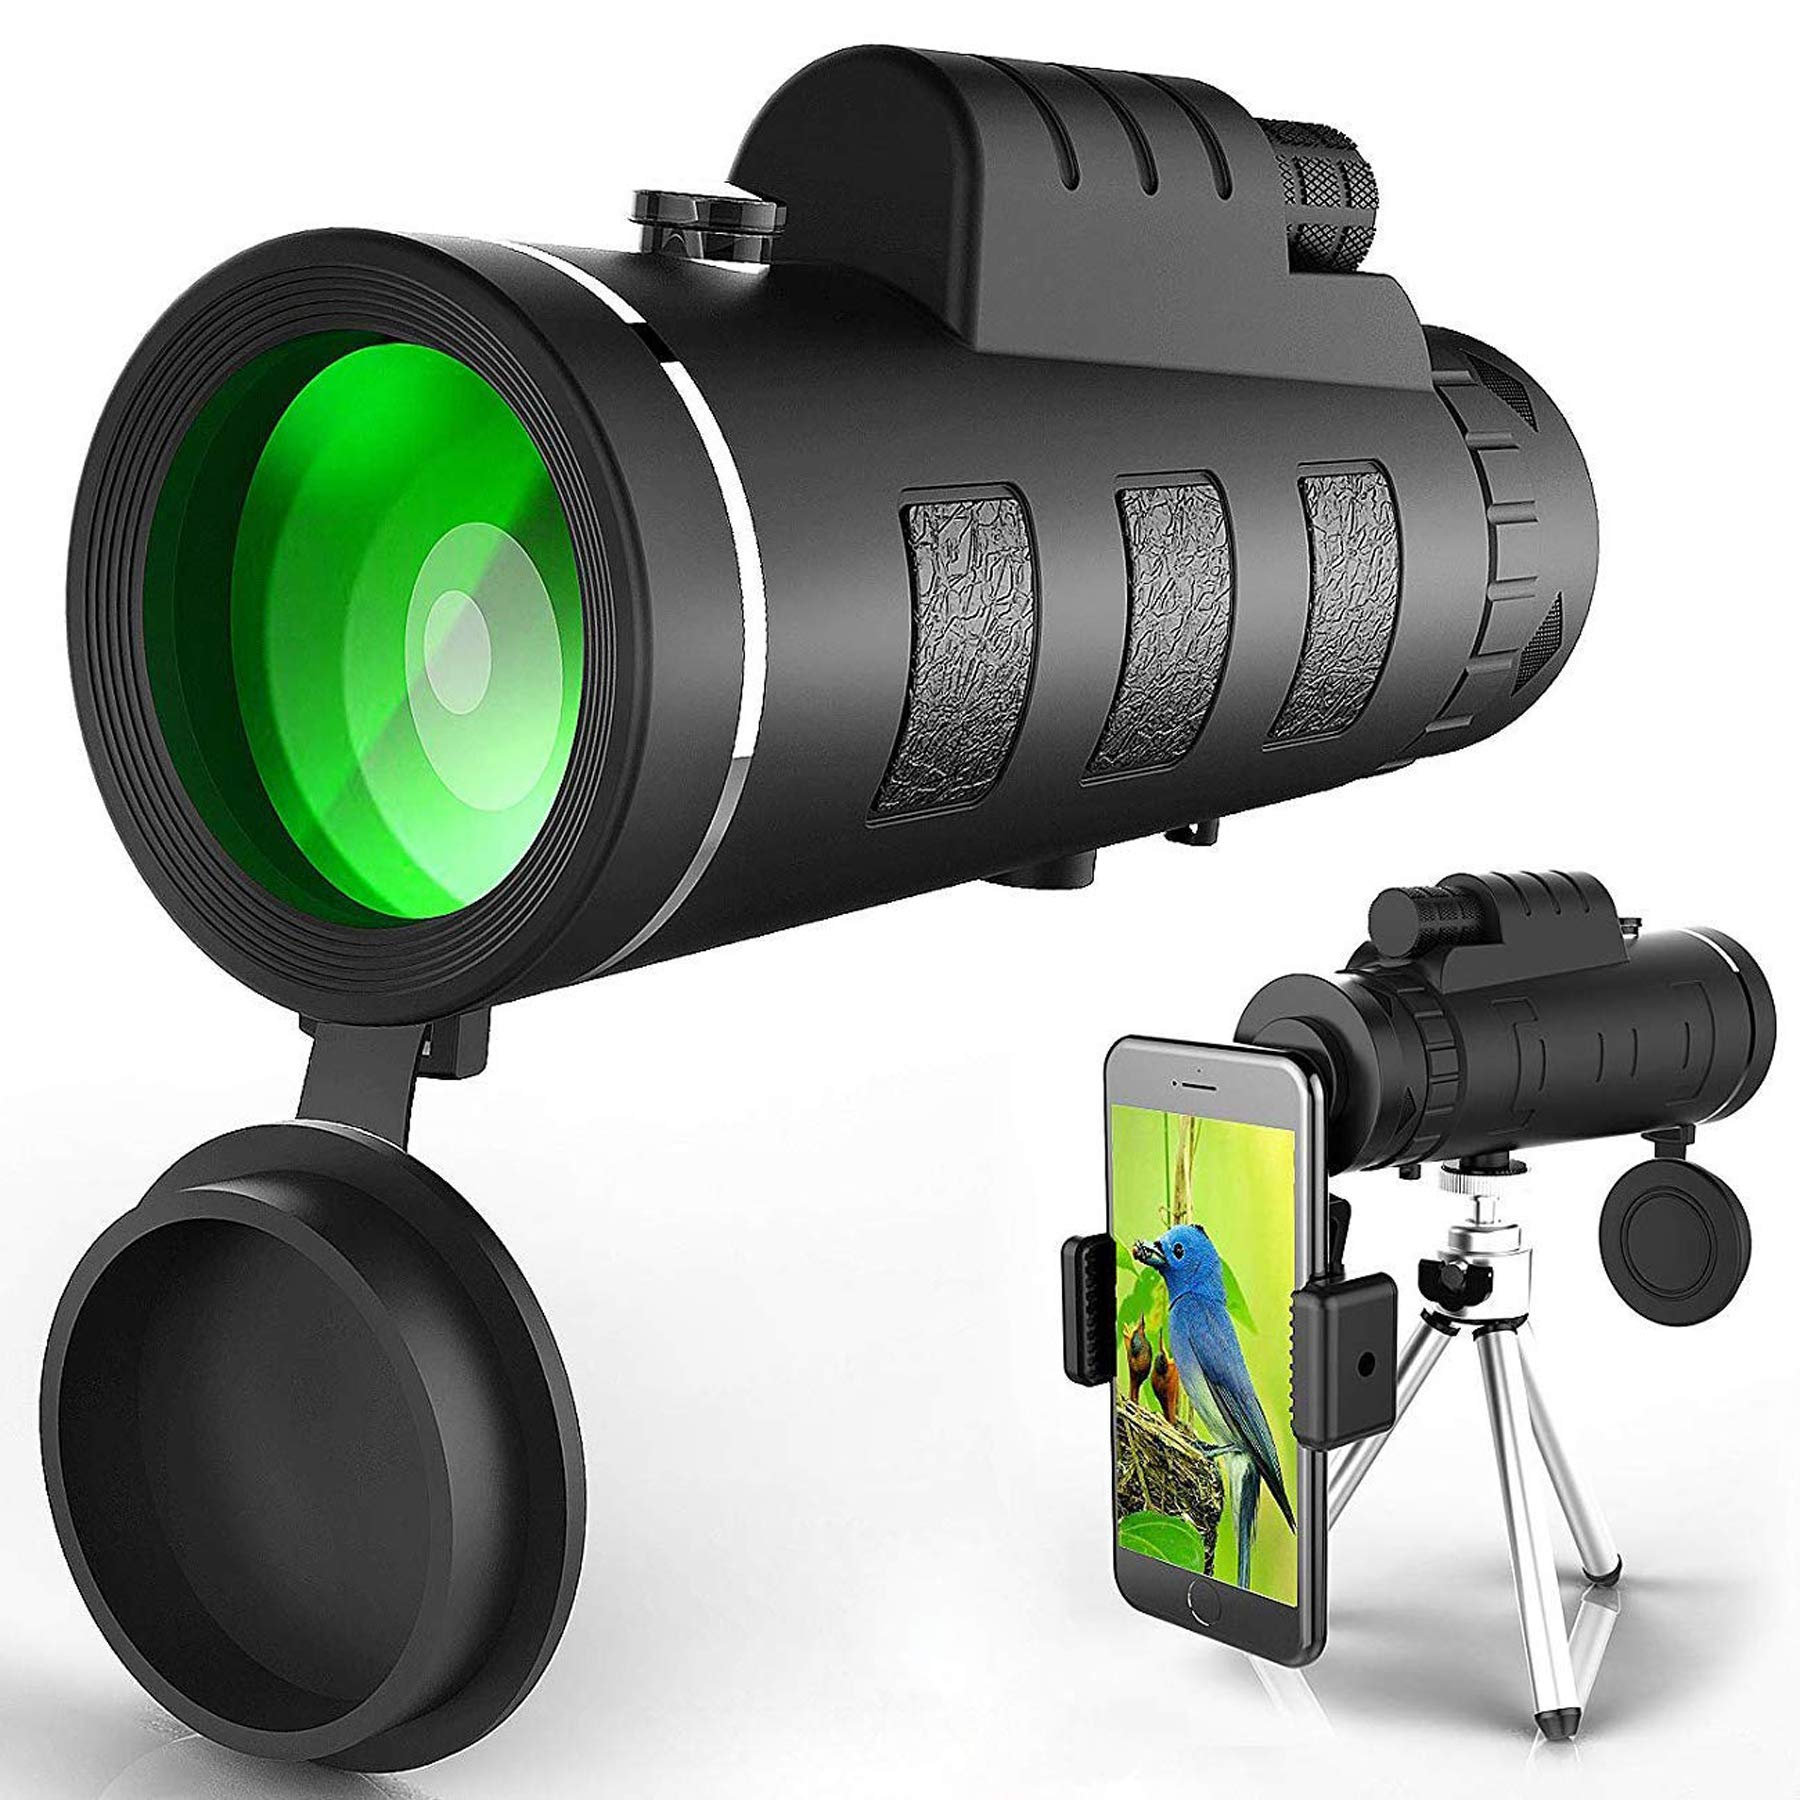 Monocular Telescope, Waterproof Monoculars with Phone Clip, Prism Monocular for Bird Watching/Hunting/Camping/Travel